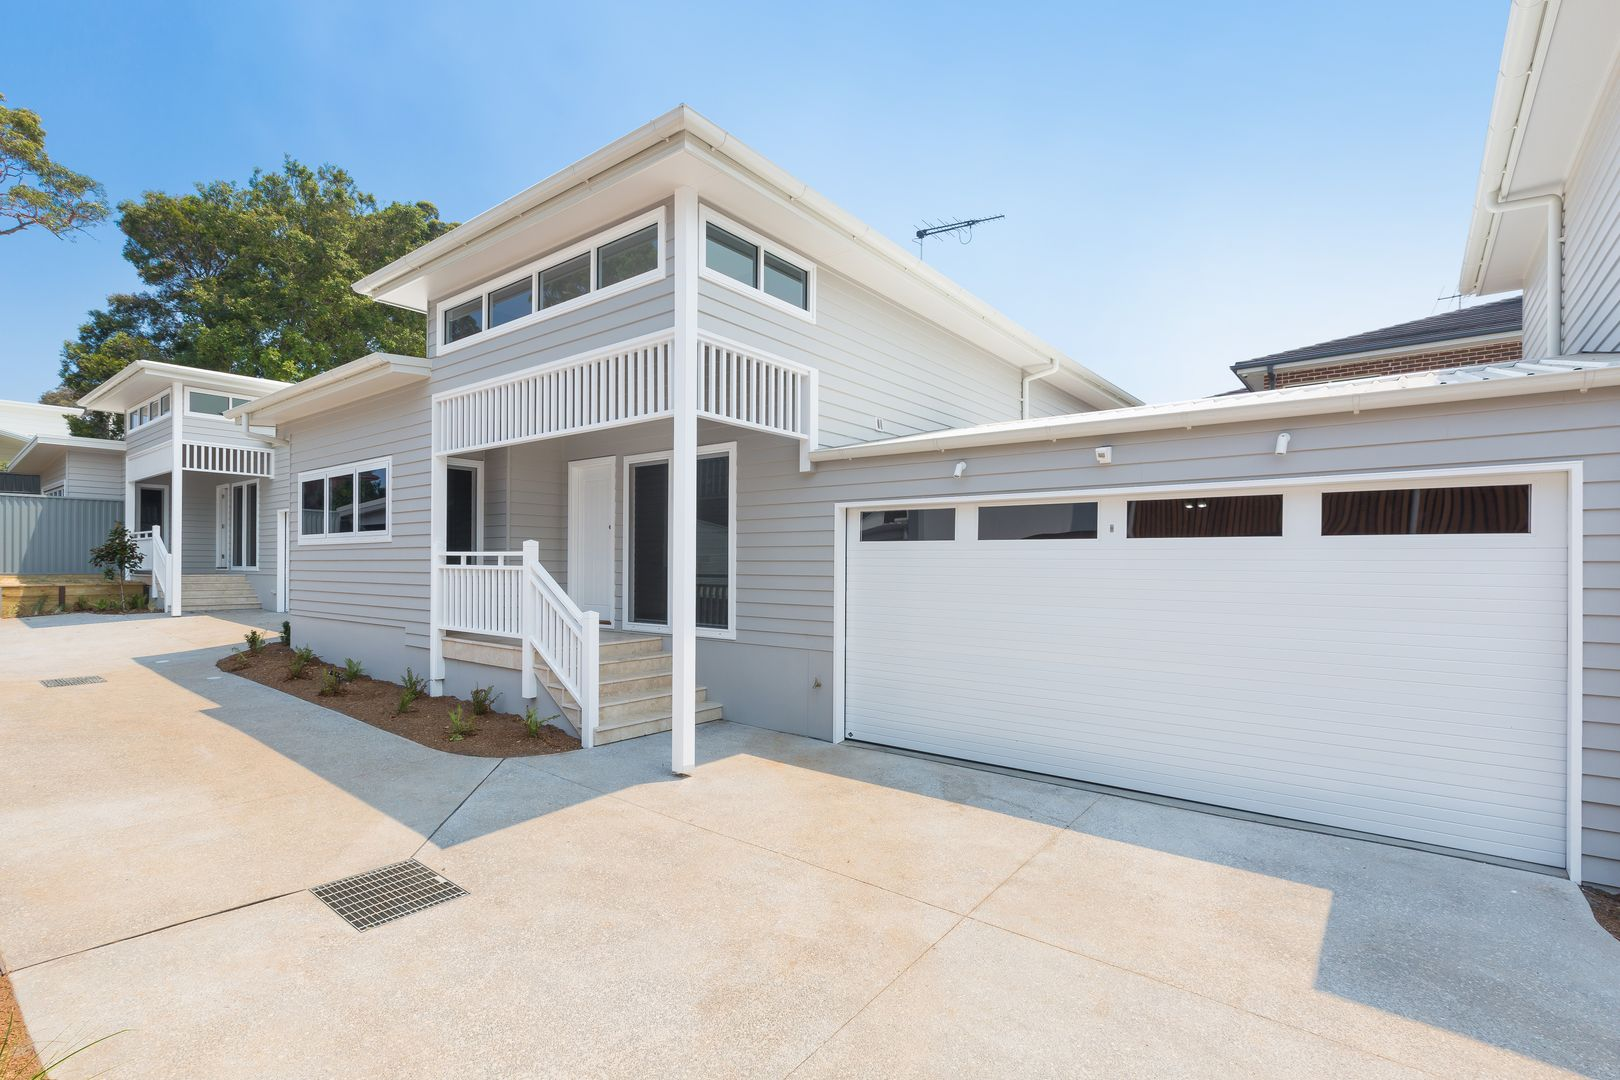 2/6 Dudley Avenue, Caringbah South NSW 2229, Image 0